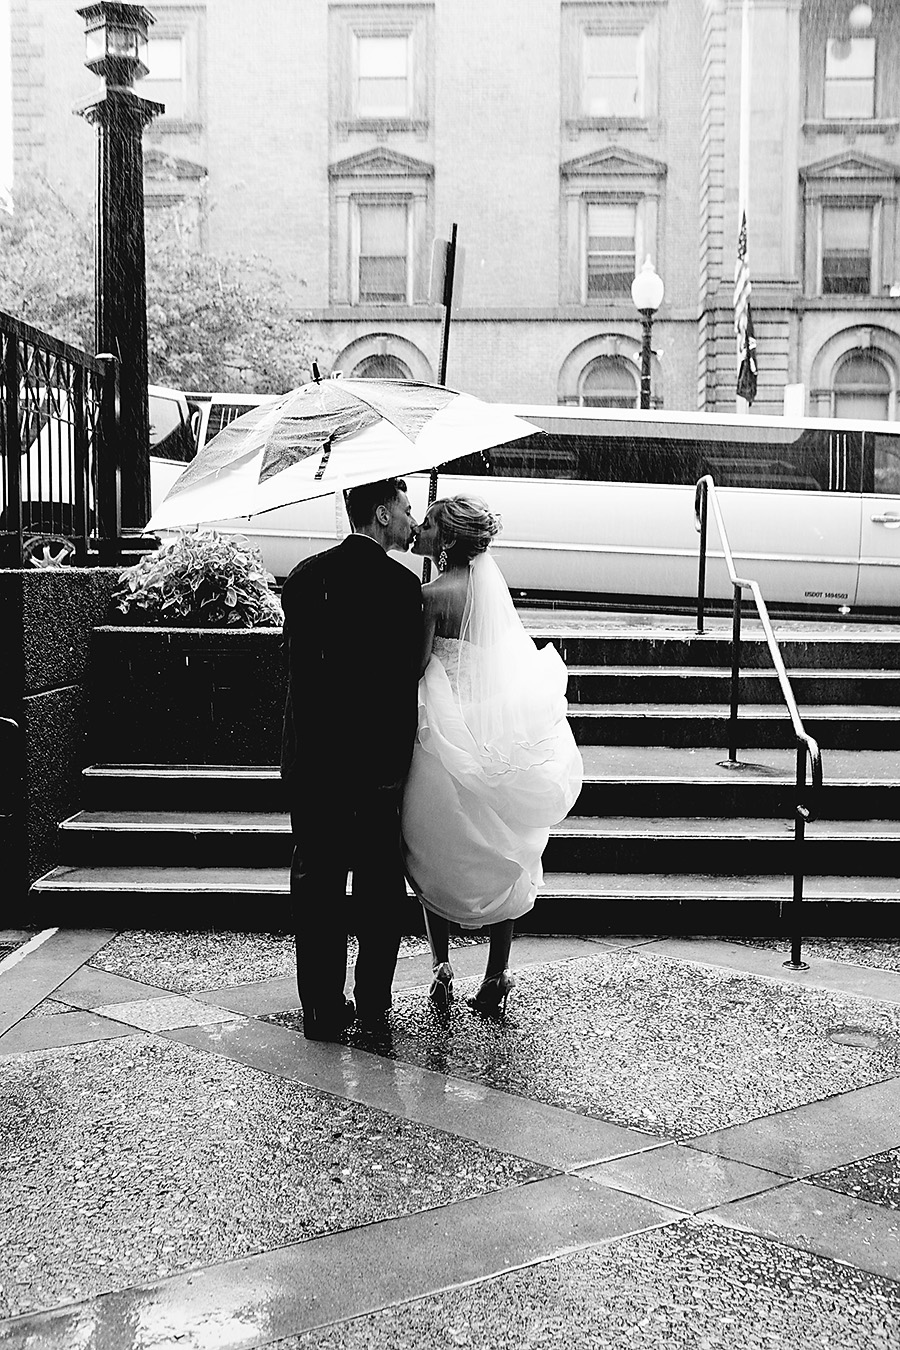 bride-and-groom-in-the-rain April Showers - Photos of Rain, Umbrellas, Boots, and More... Activities Photo Sharing & Inspiration